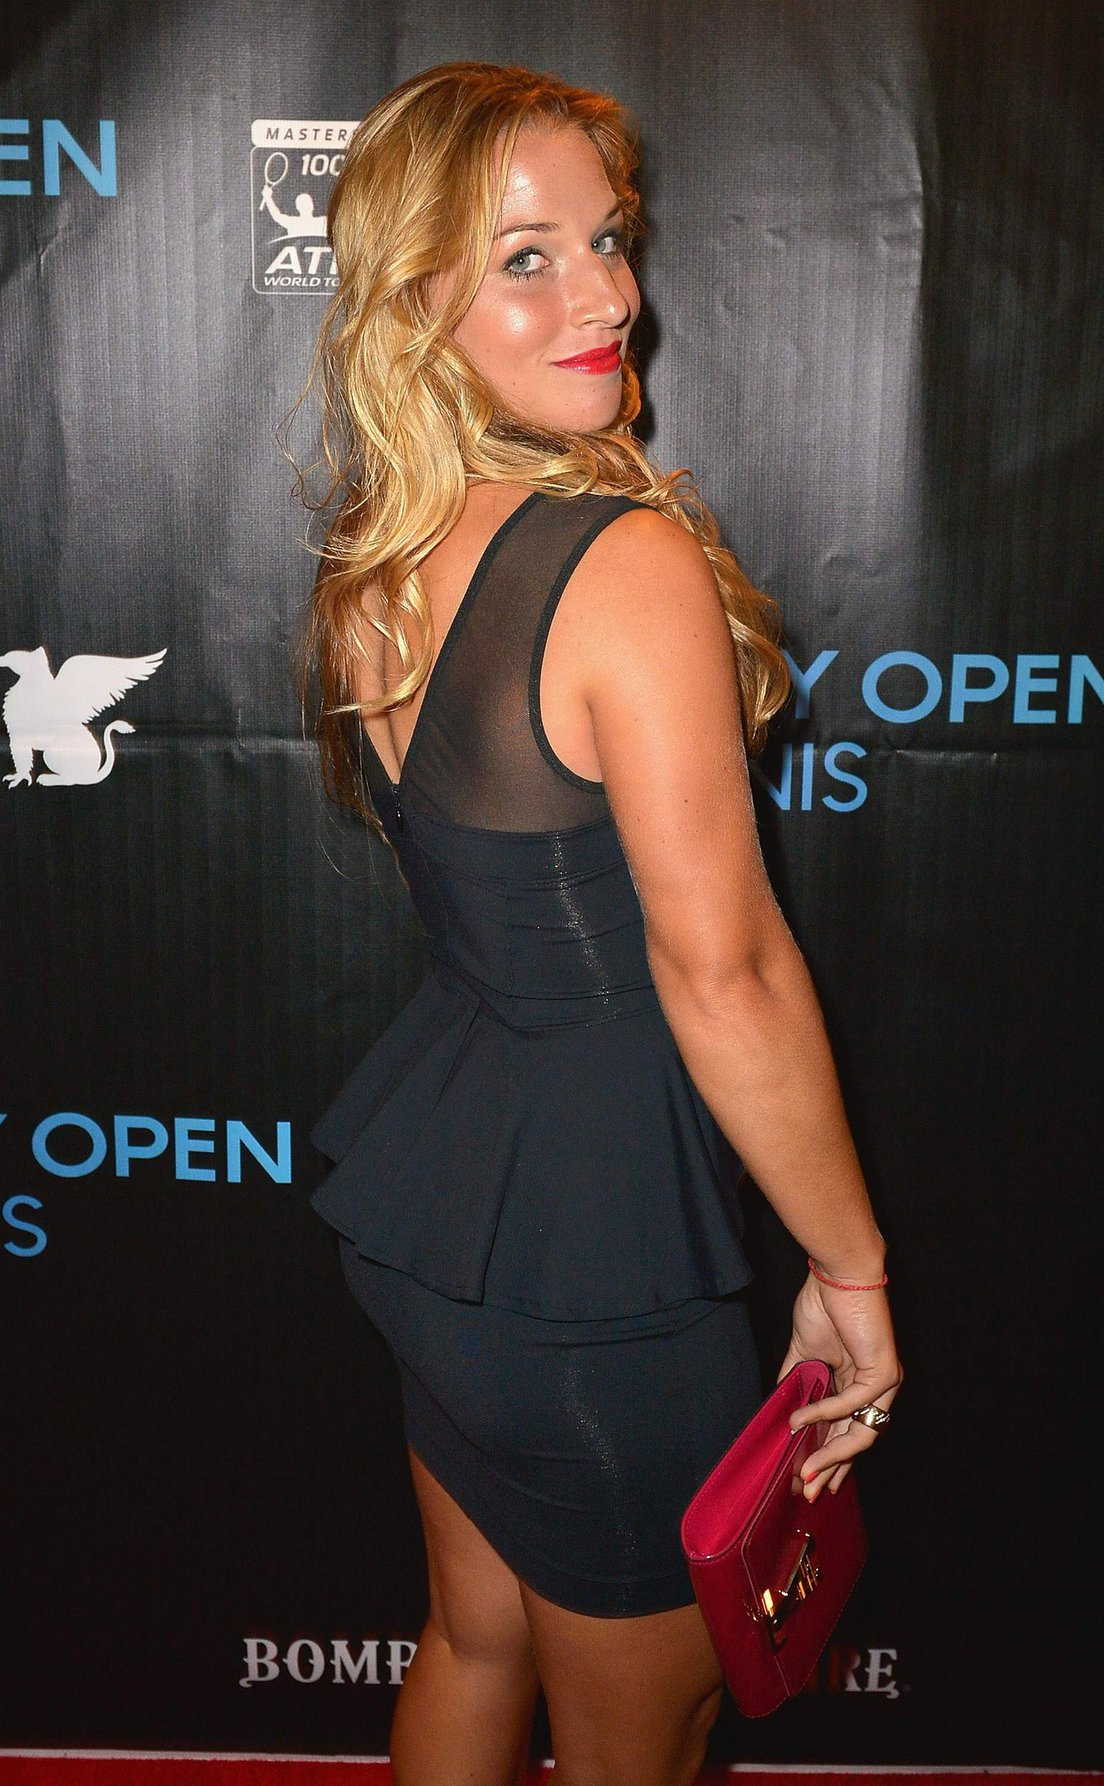 Dominika Cibulkova attends the 2013 Sony Open Player Party at JW Marriott Marquis in Miami